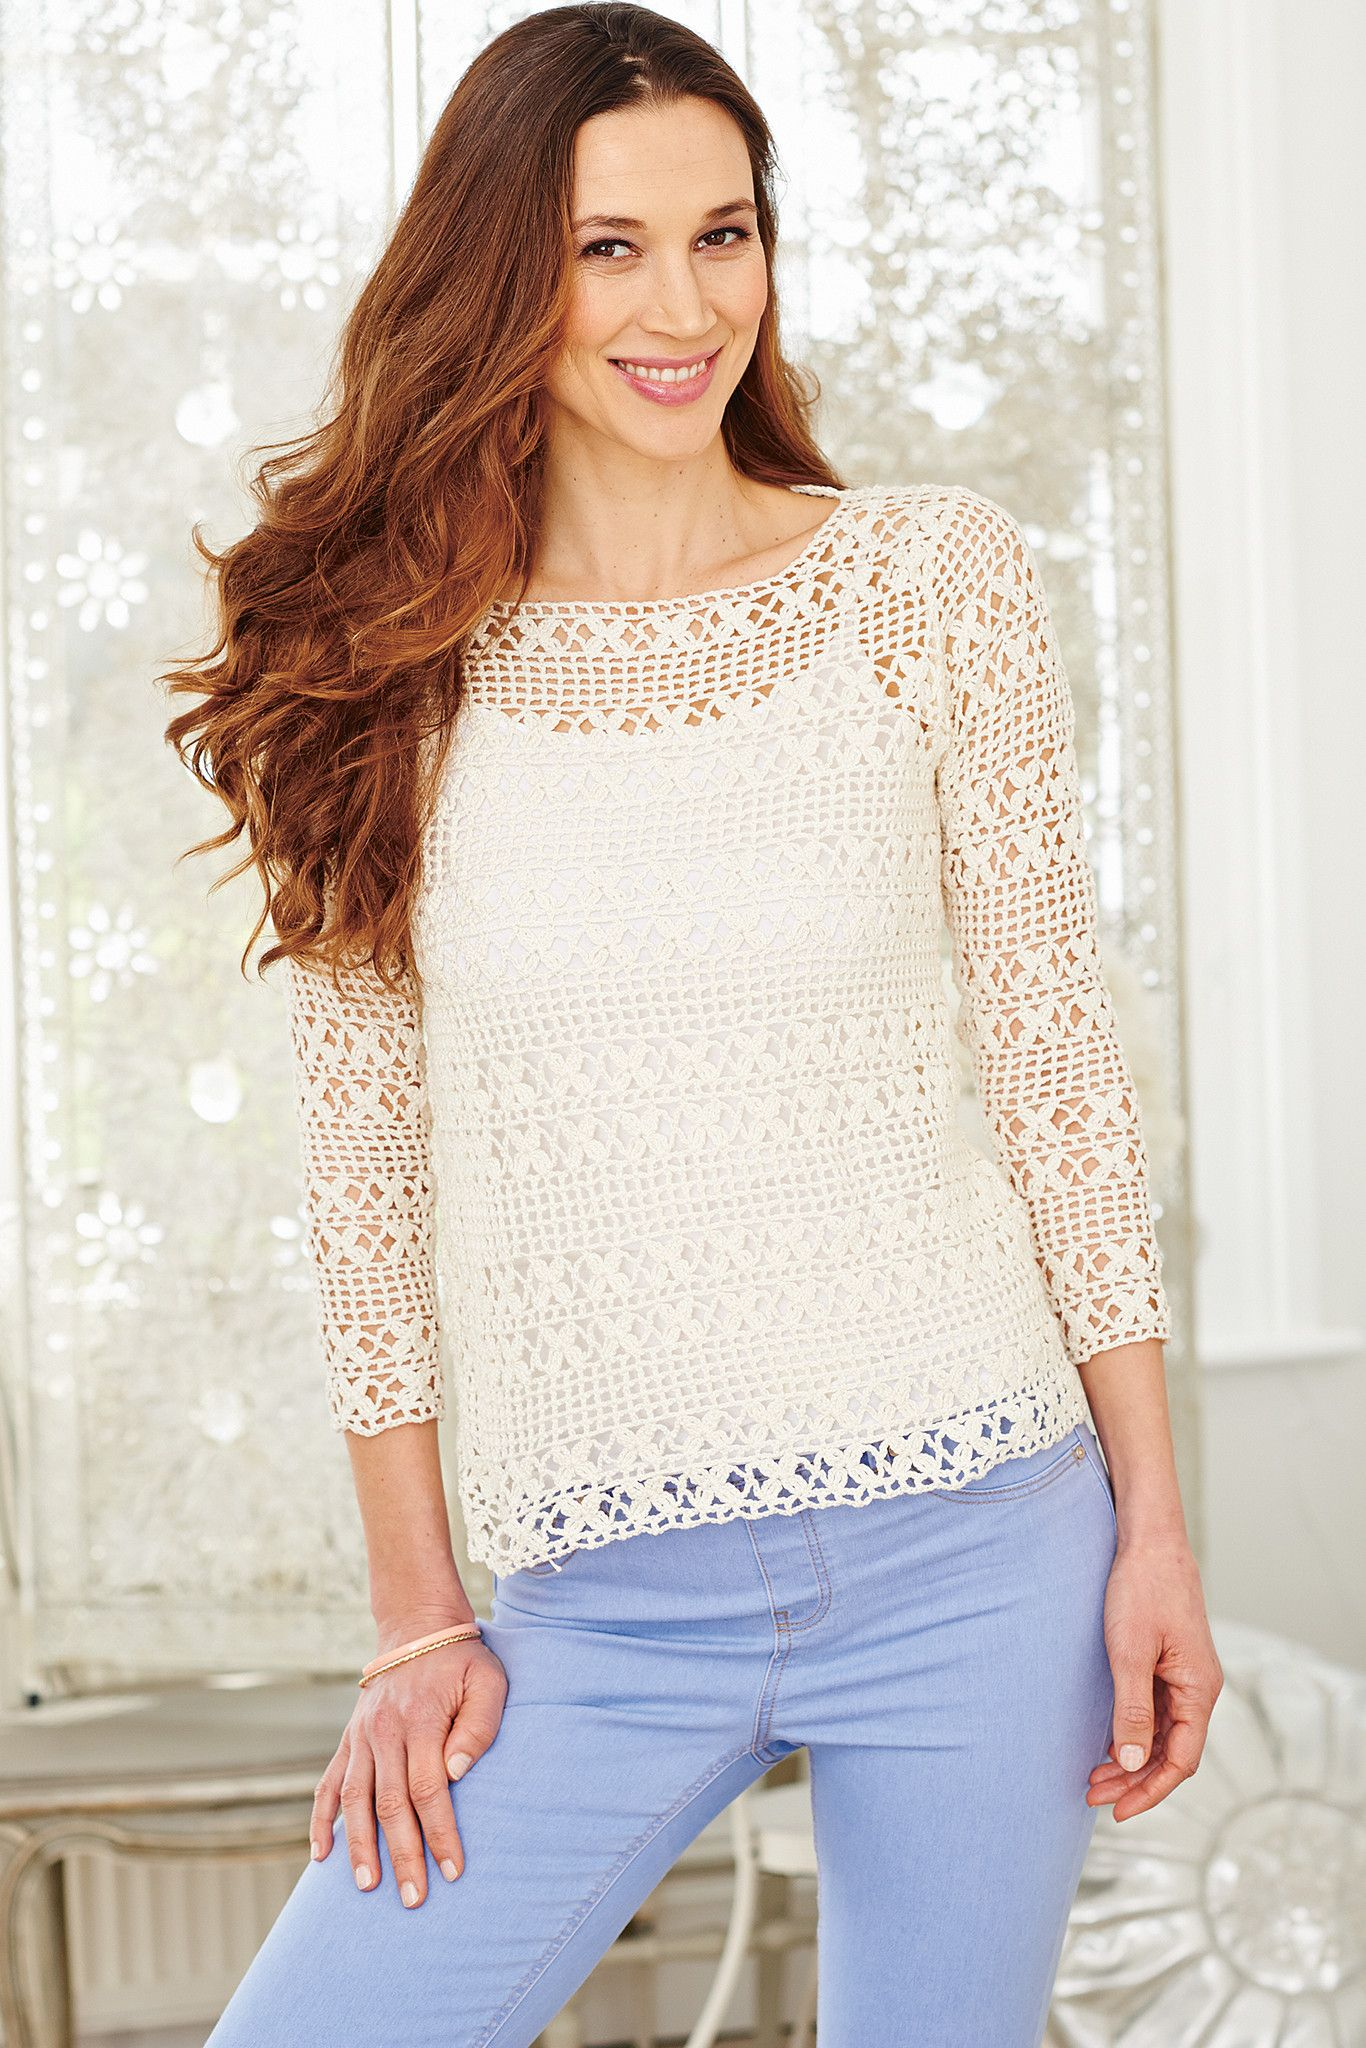 Crocheted Three Quarter Sleeve Summer Top With Slash Neck Shop This